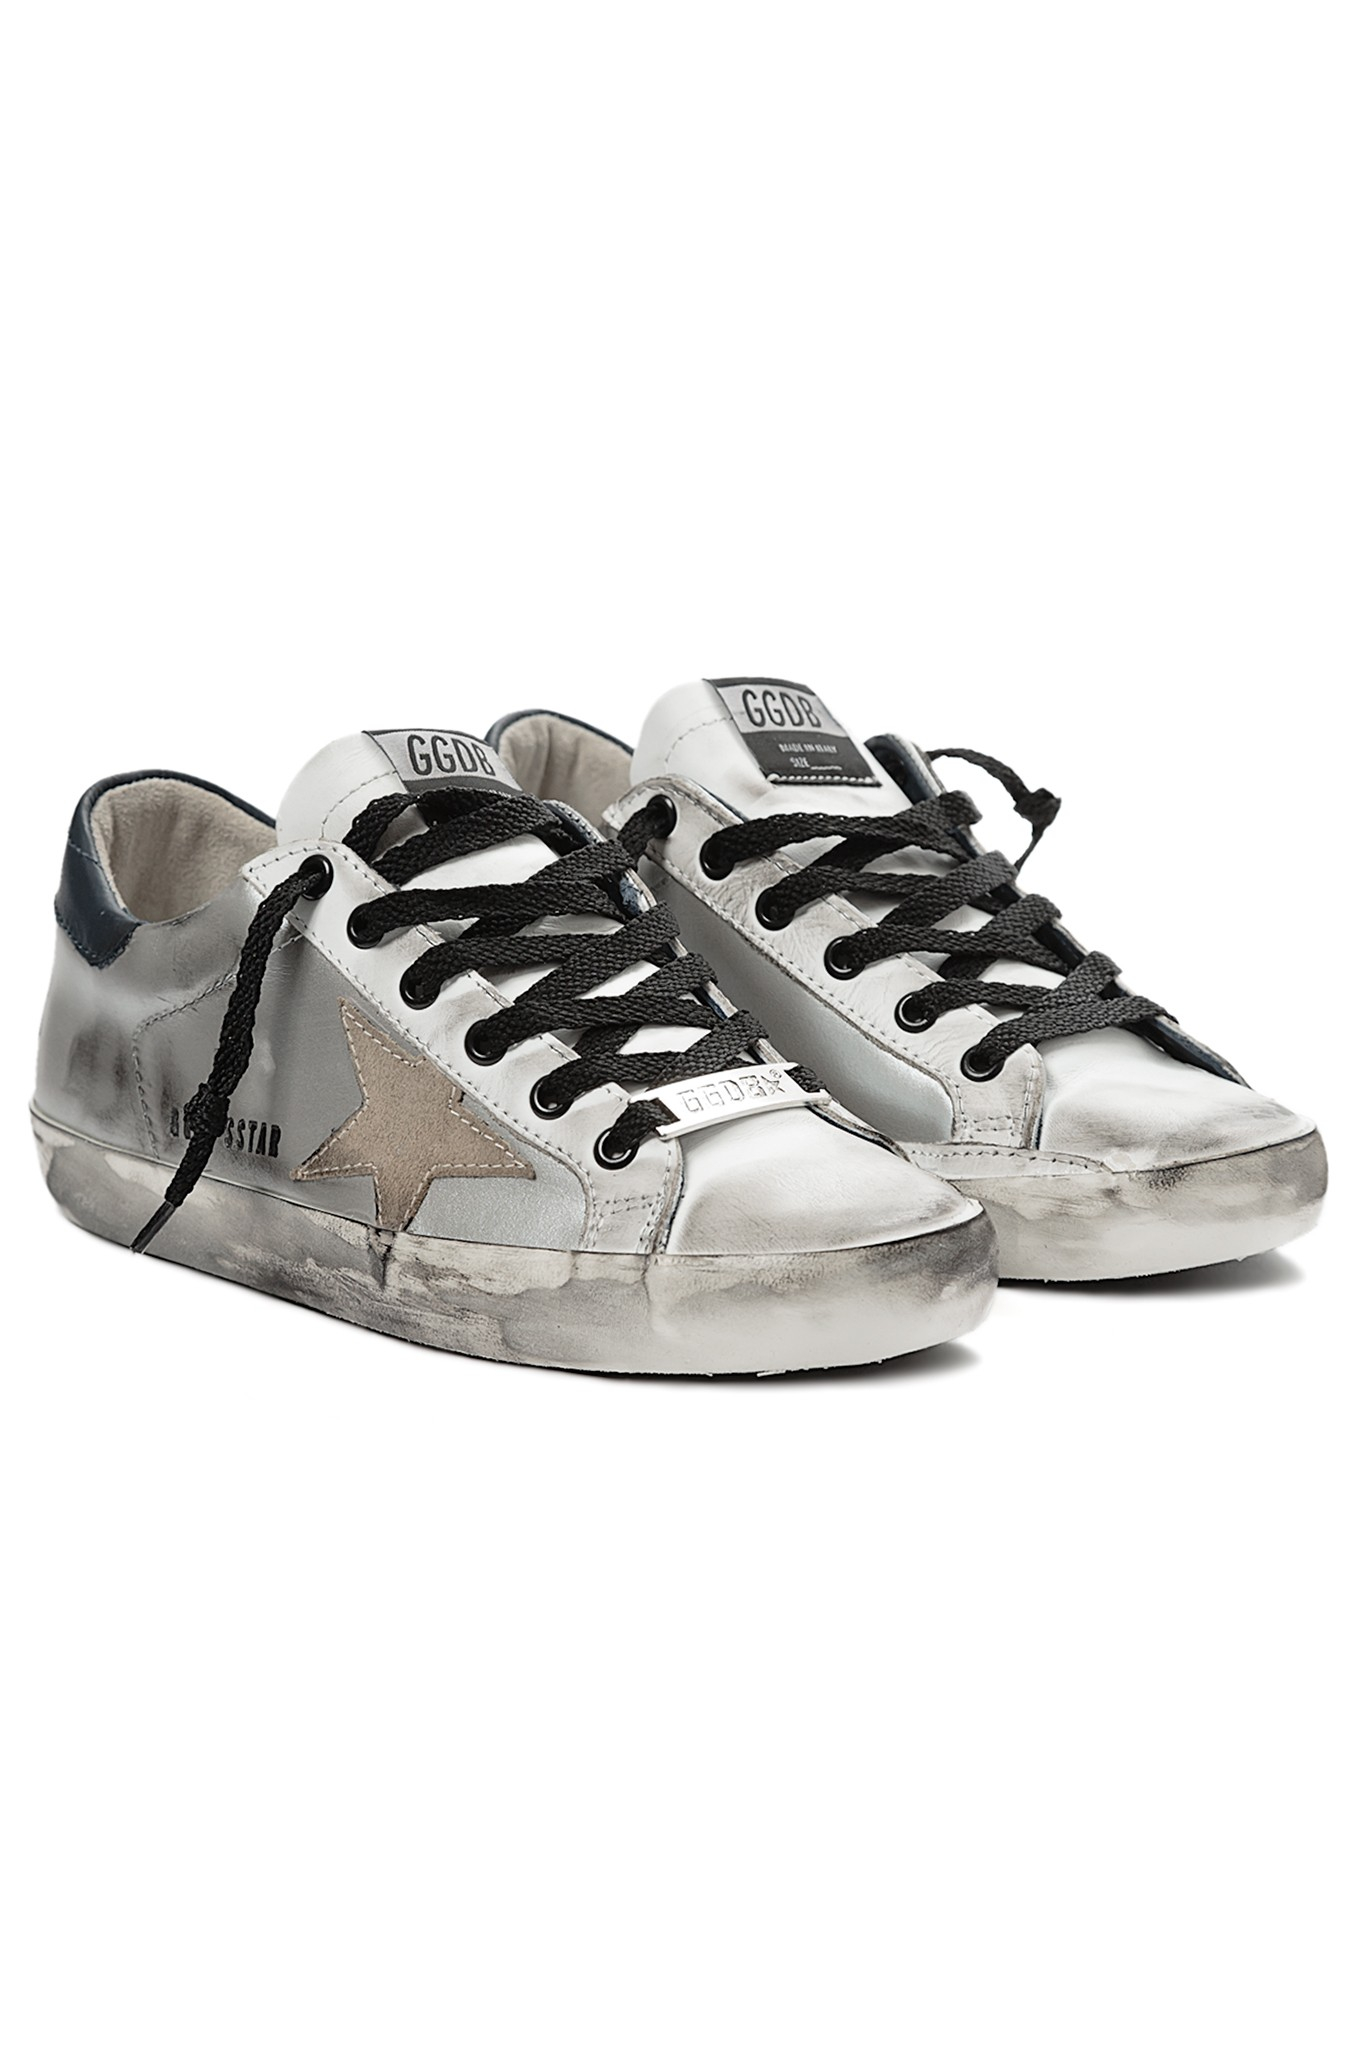 golden goose deluxe brand superstar low sneaker in silver silv lyst. Black Bedroom Furniture Sets. Home Design Ideas